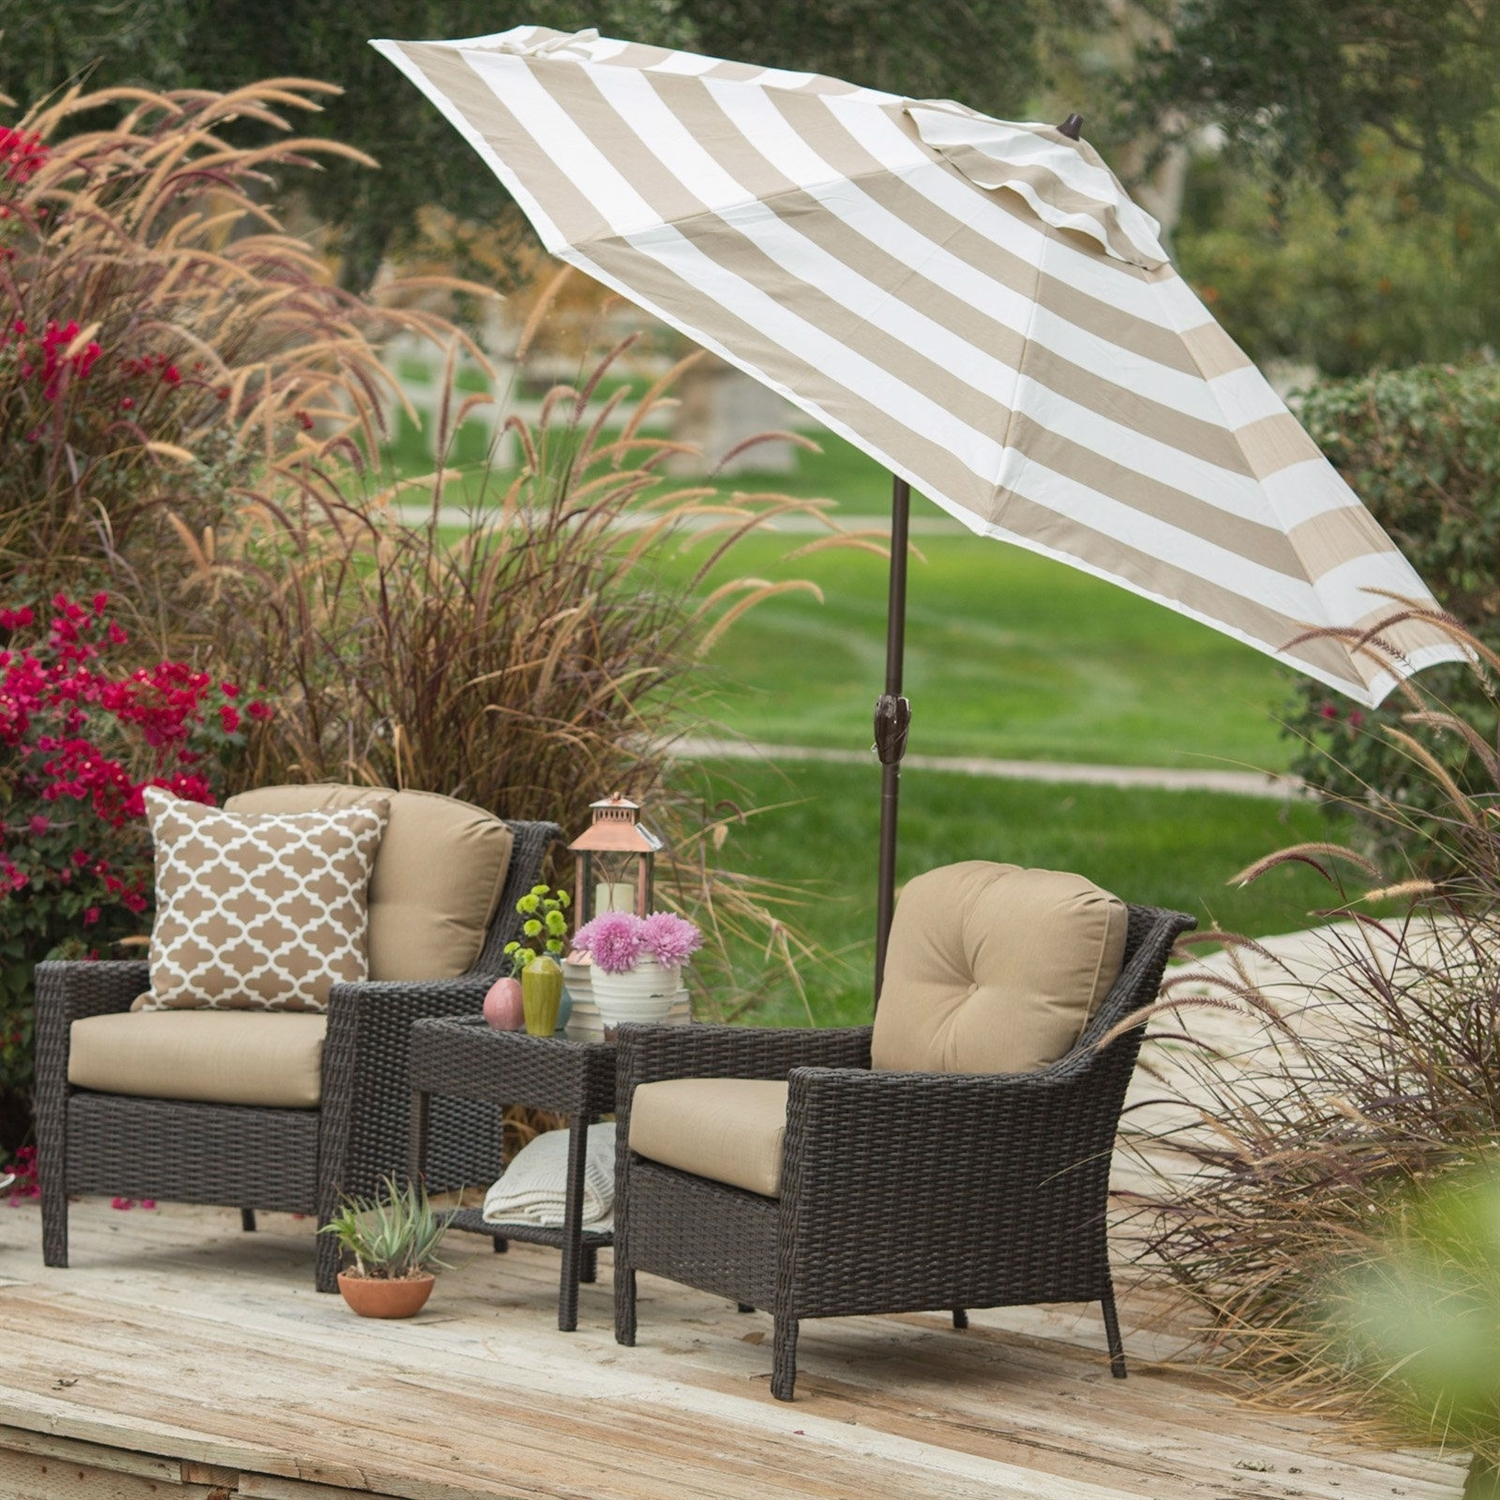 9 Ft Market Umbrella With Tilt And Crank With Beige And White Stripe Throughout Widely Used 9 Ft Patio Umbrellas (Gallery 13 of 20)